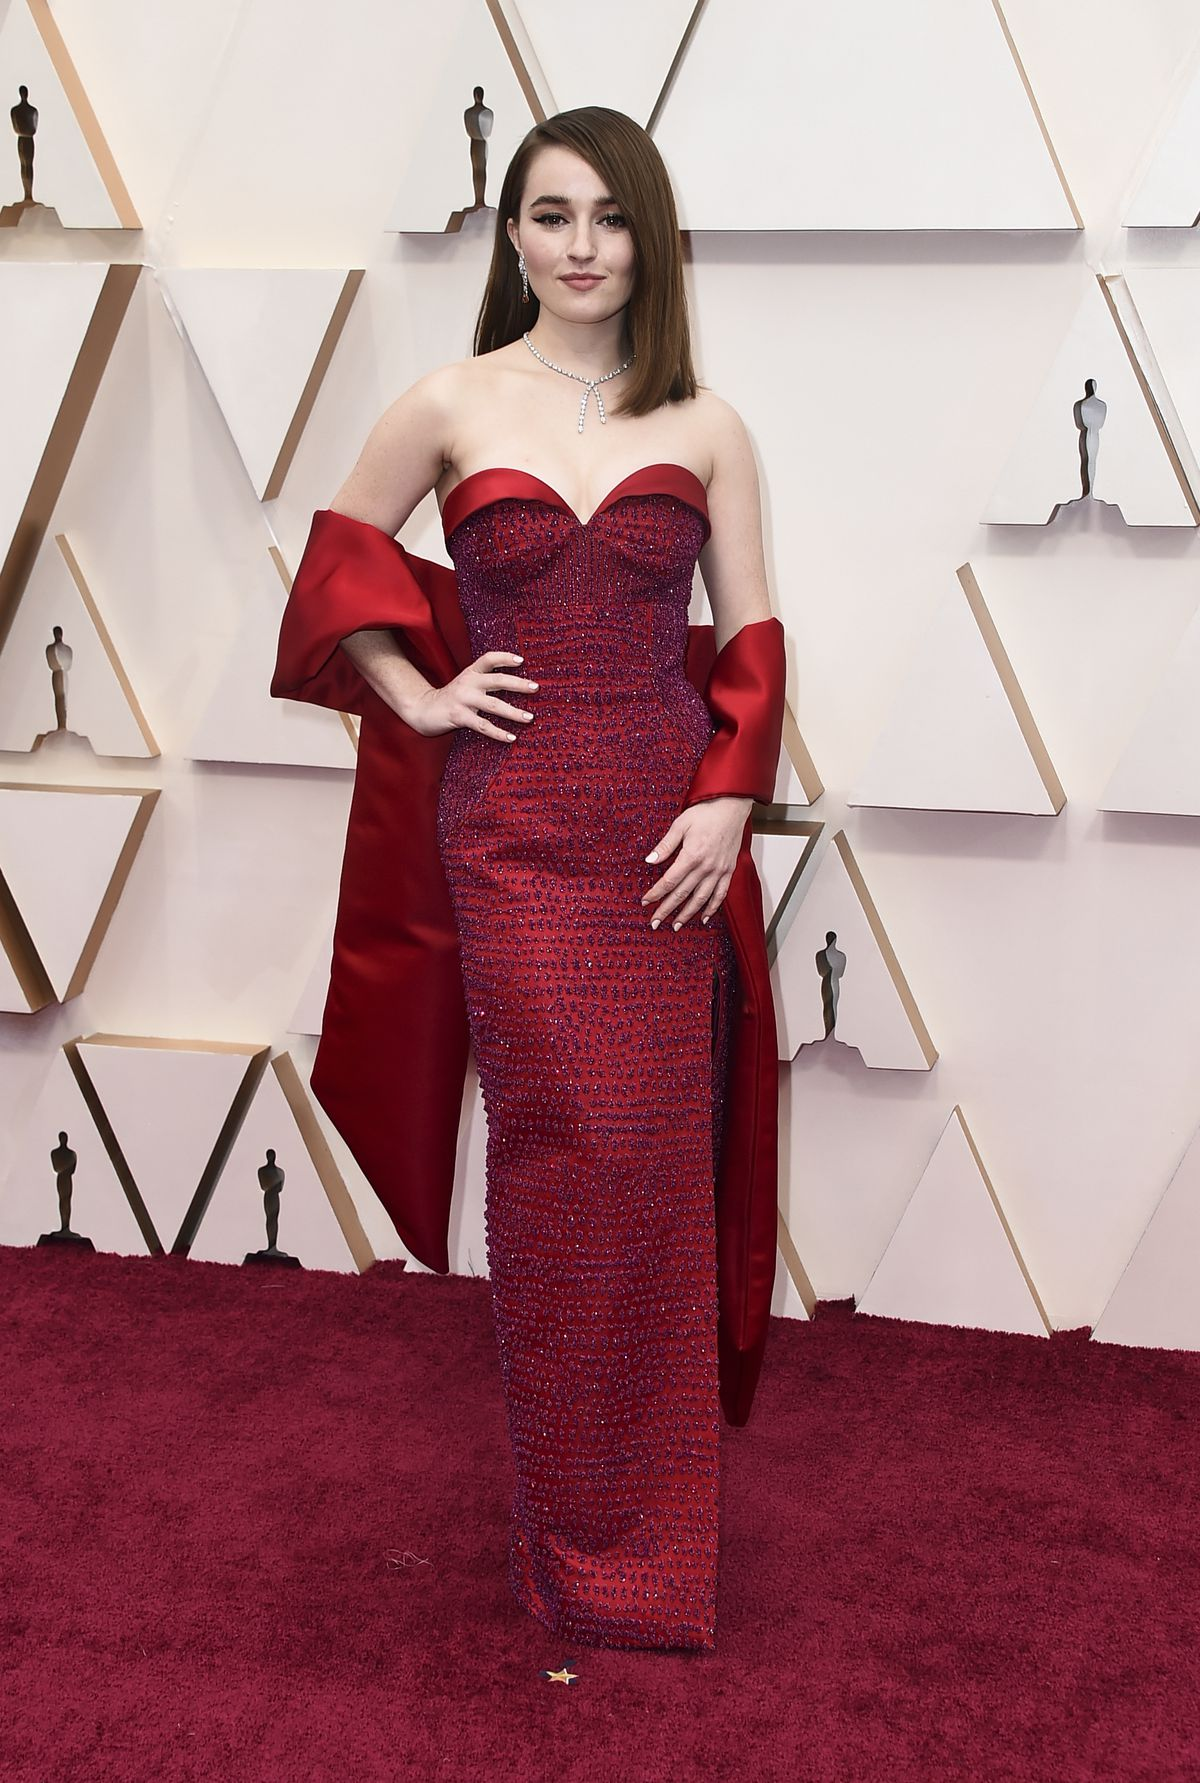 Kaitlyn Dever arrives at the Oscars wearing a scarlet Louis Vuitton couture gown designed with fuchsia glass beads and more than 14,000 Swarovski crystals.